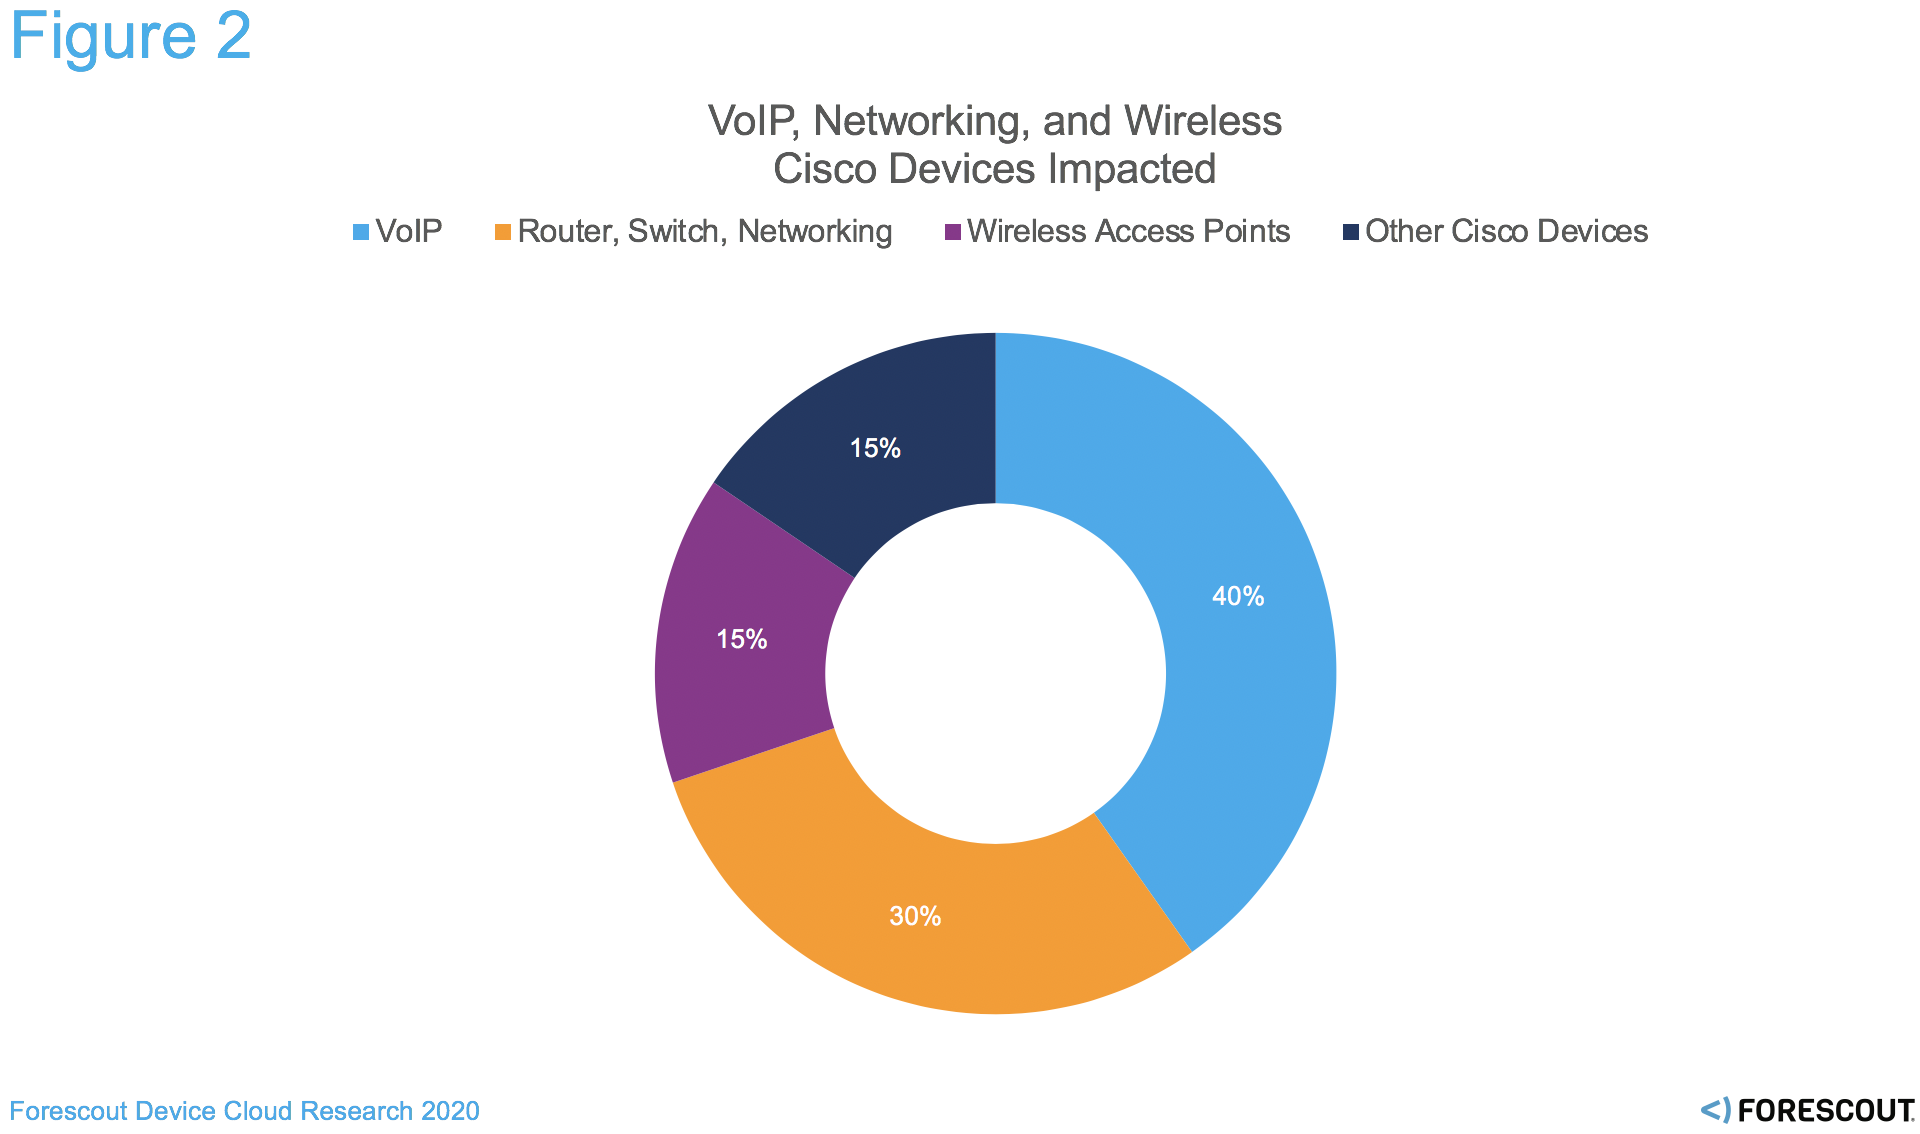 VoIP, Networking, and Wireless are the most common Cisco devices on the network